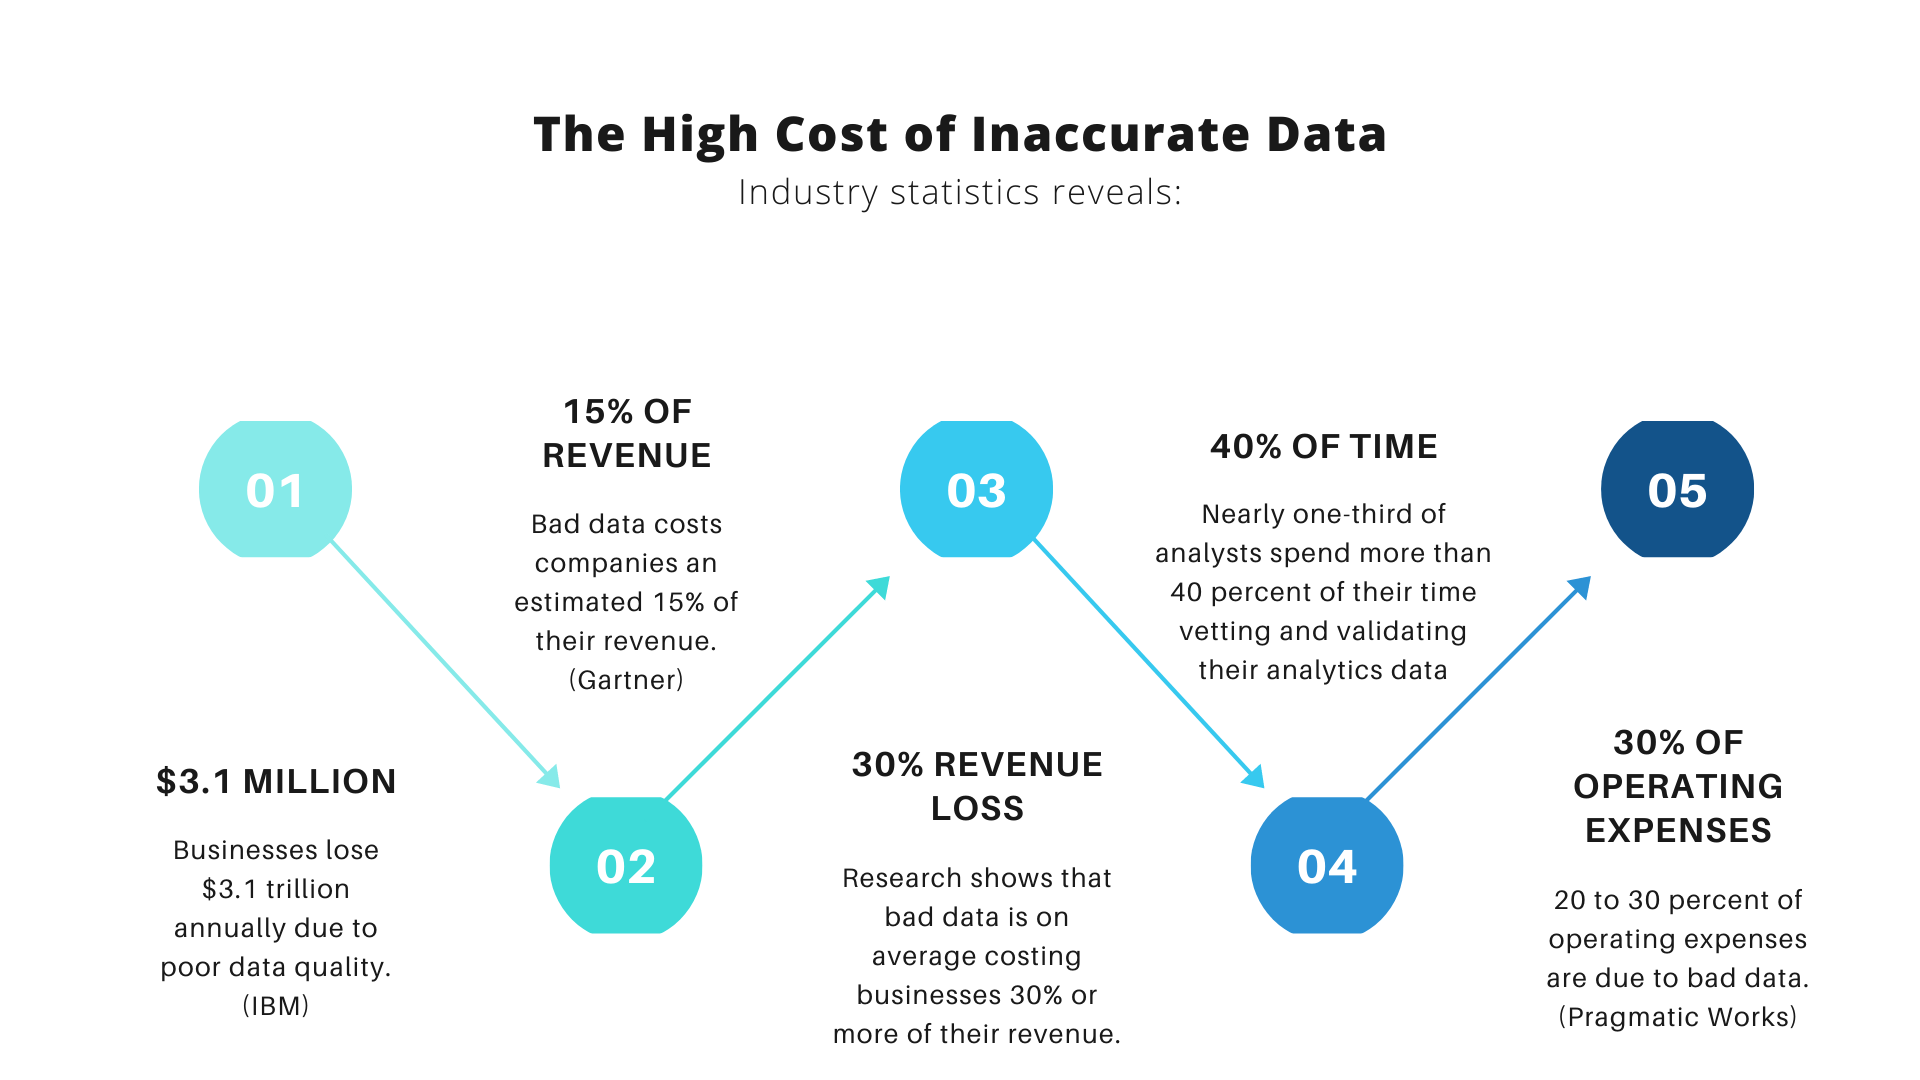 High Cost of Inaccurate Data